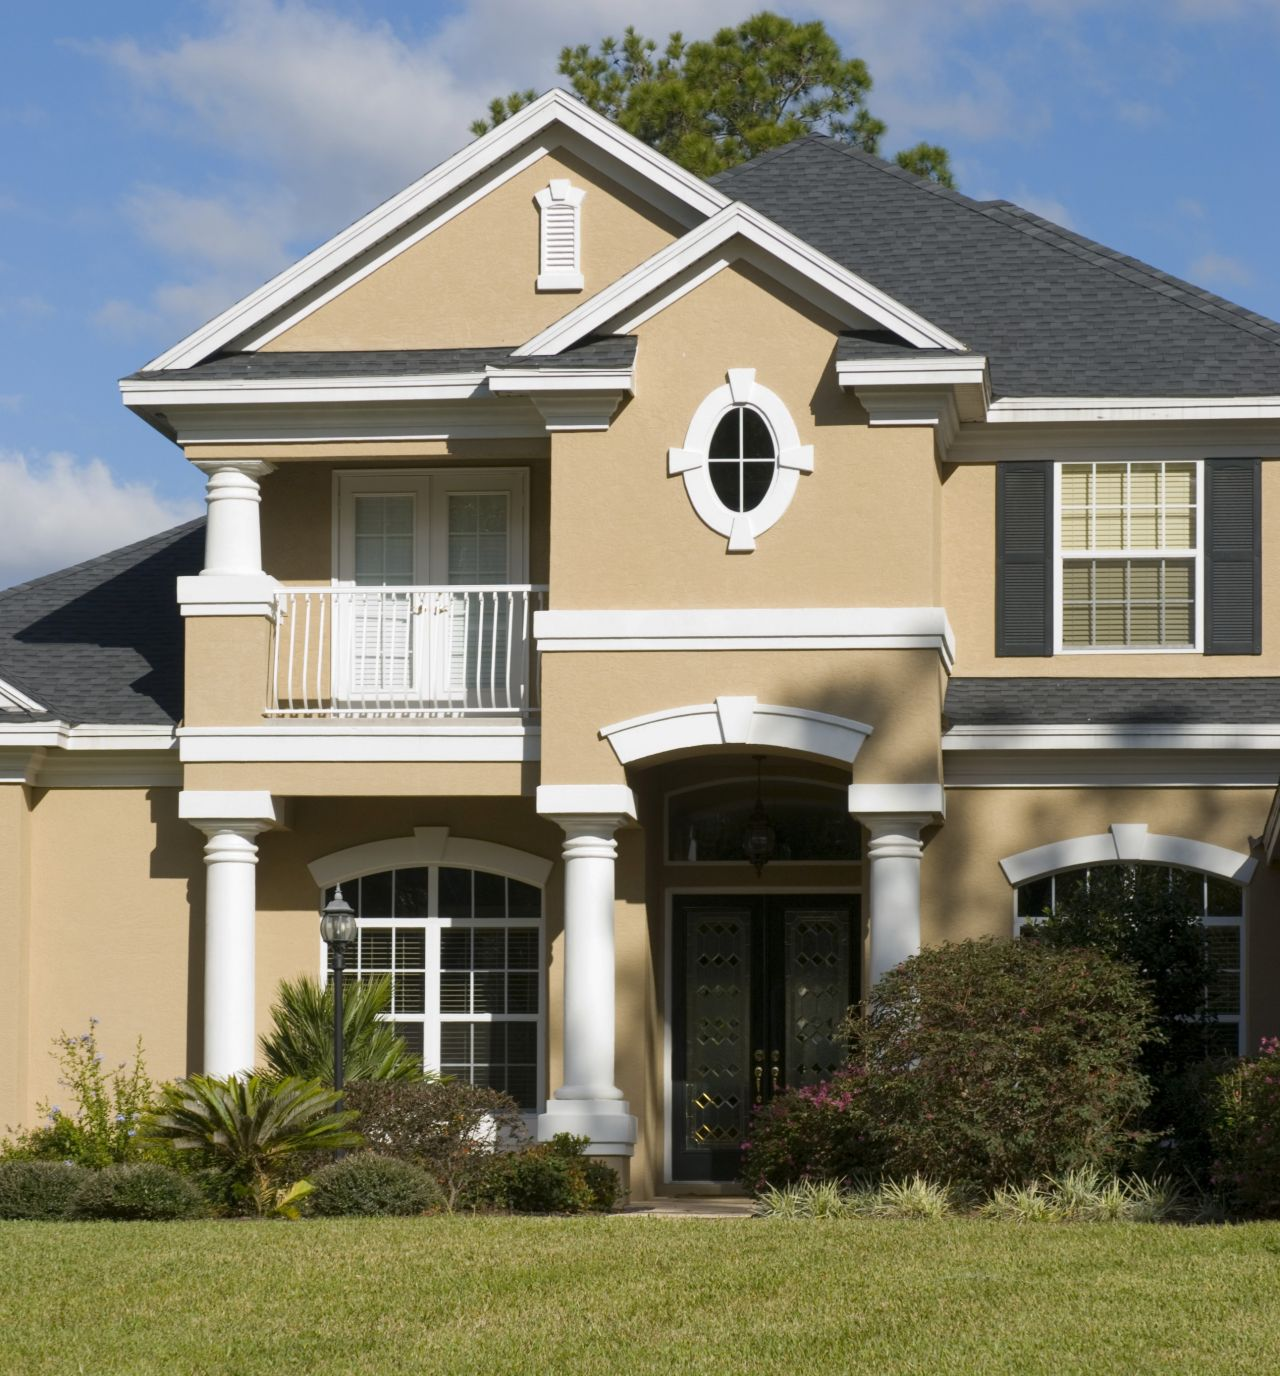 Exterior paint schemes and consider your surroundings for House paint schemes